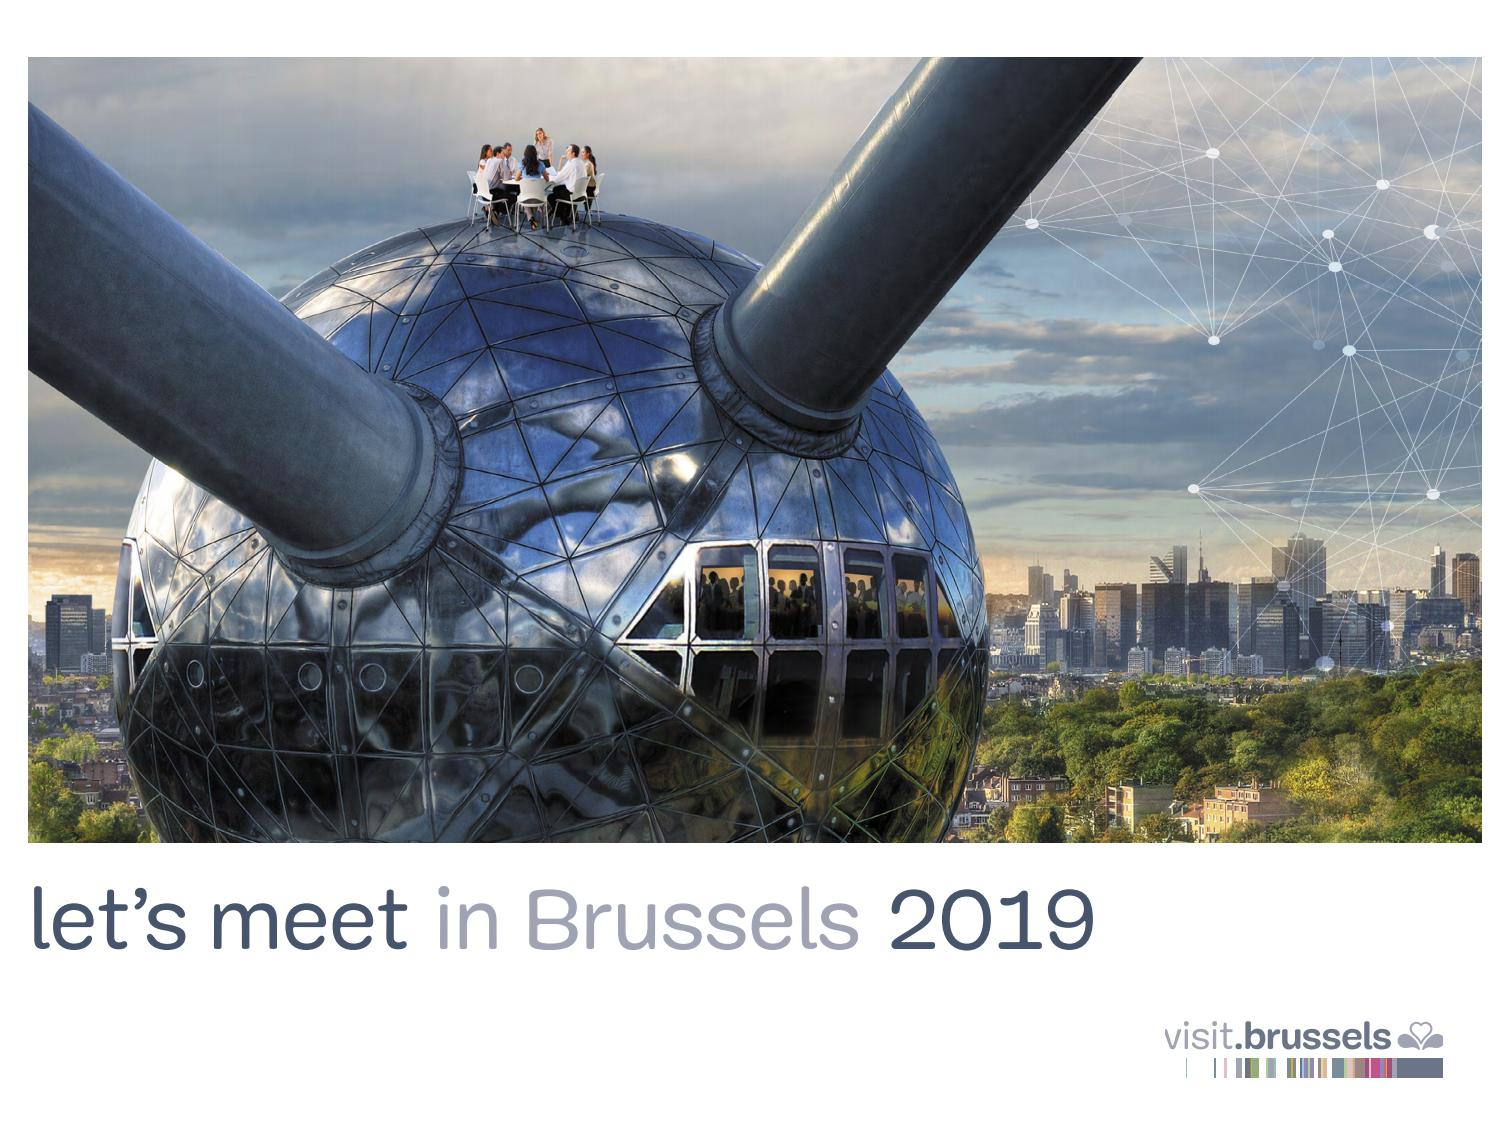 Xxl Lutz Young Let S Meet In Brussels 2019 By Visit Brussels Issuu